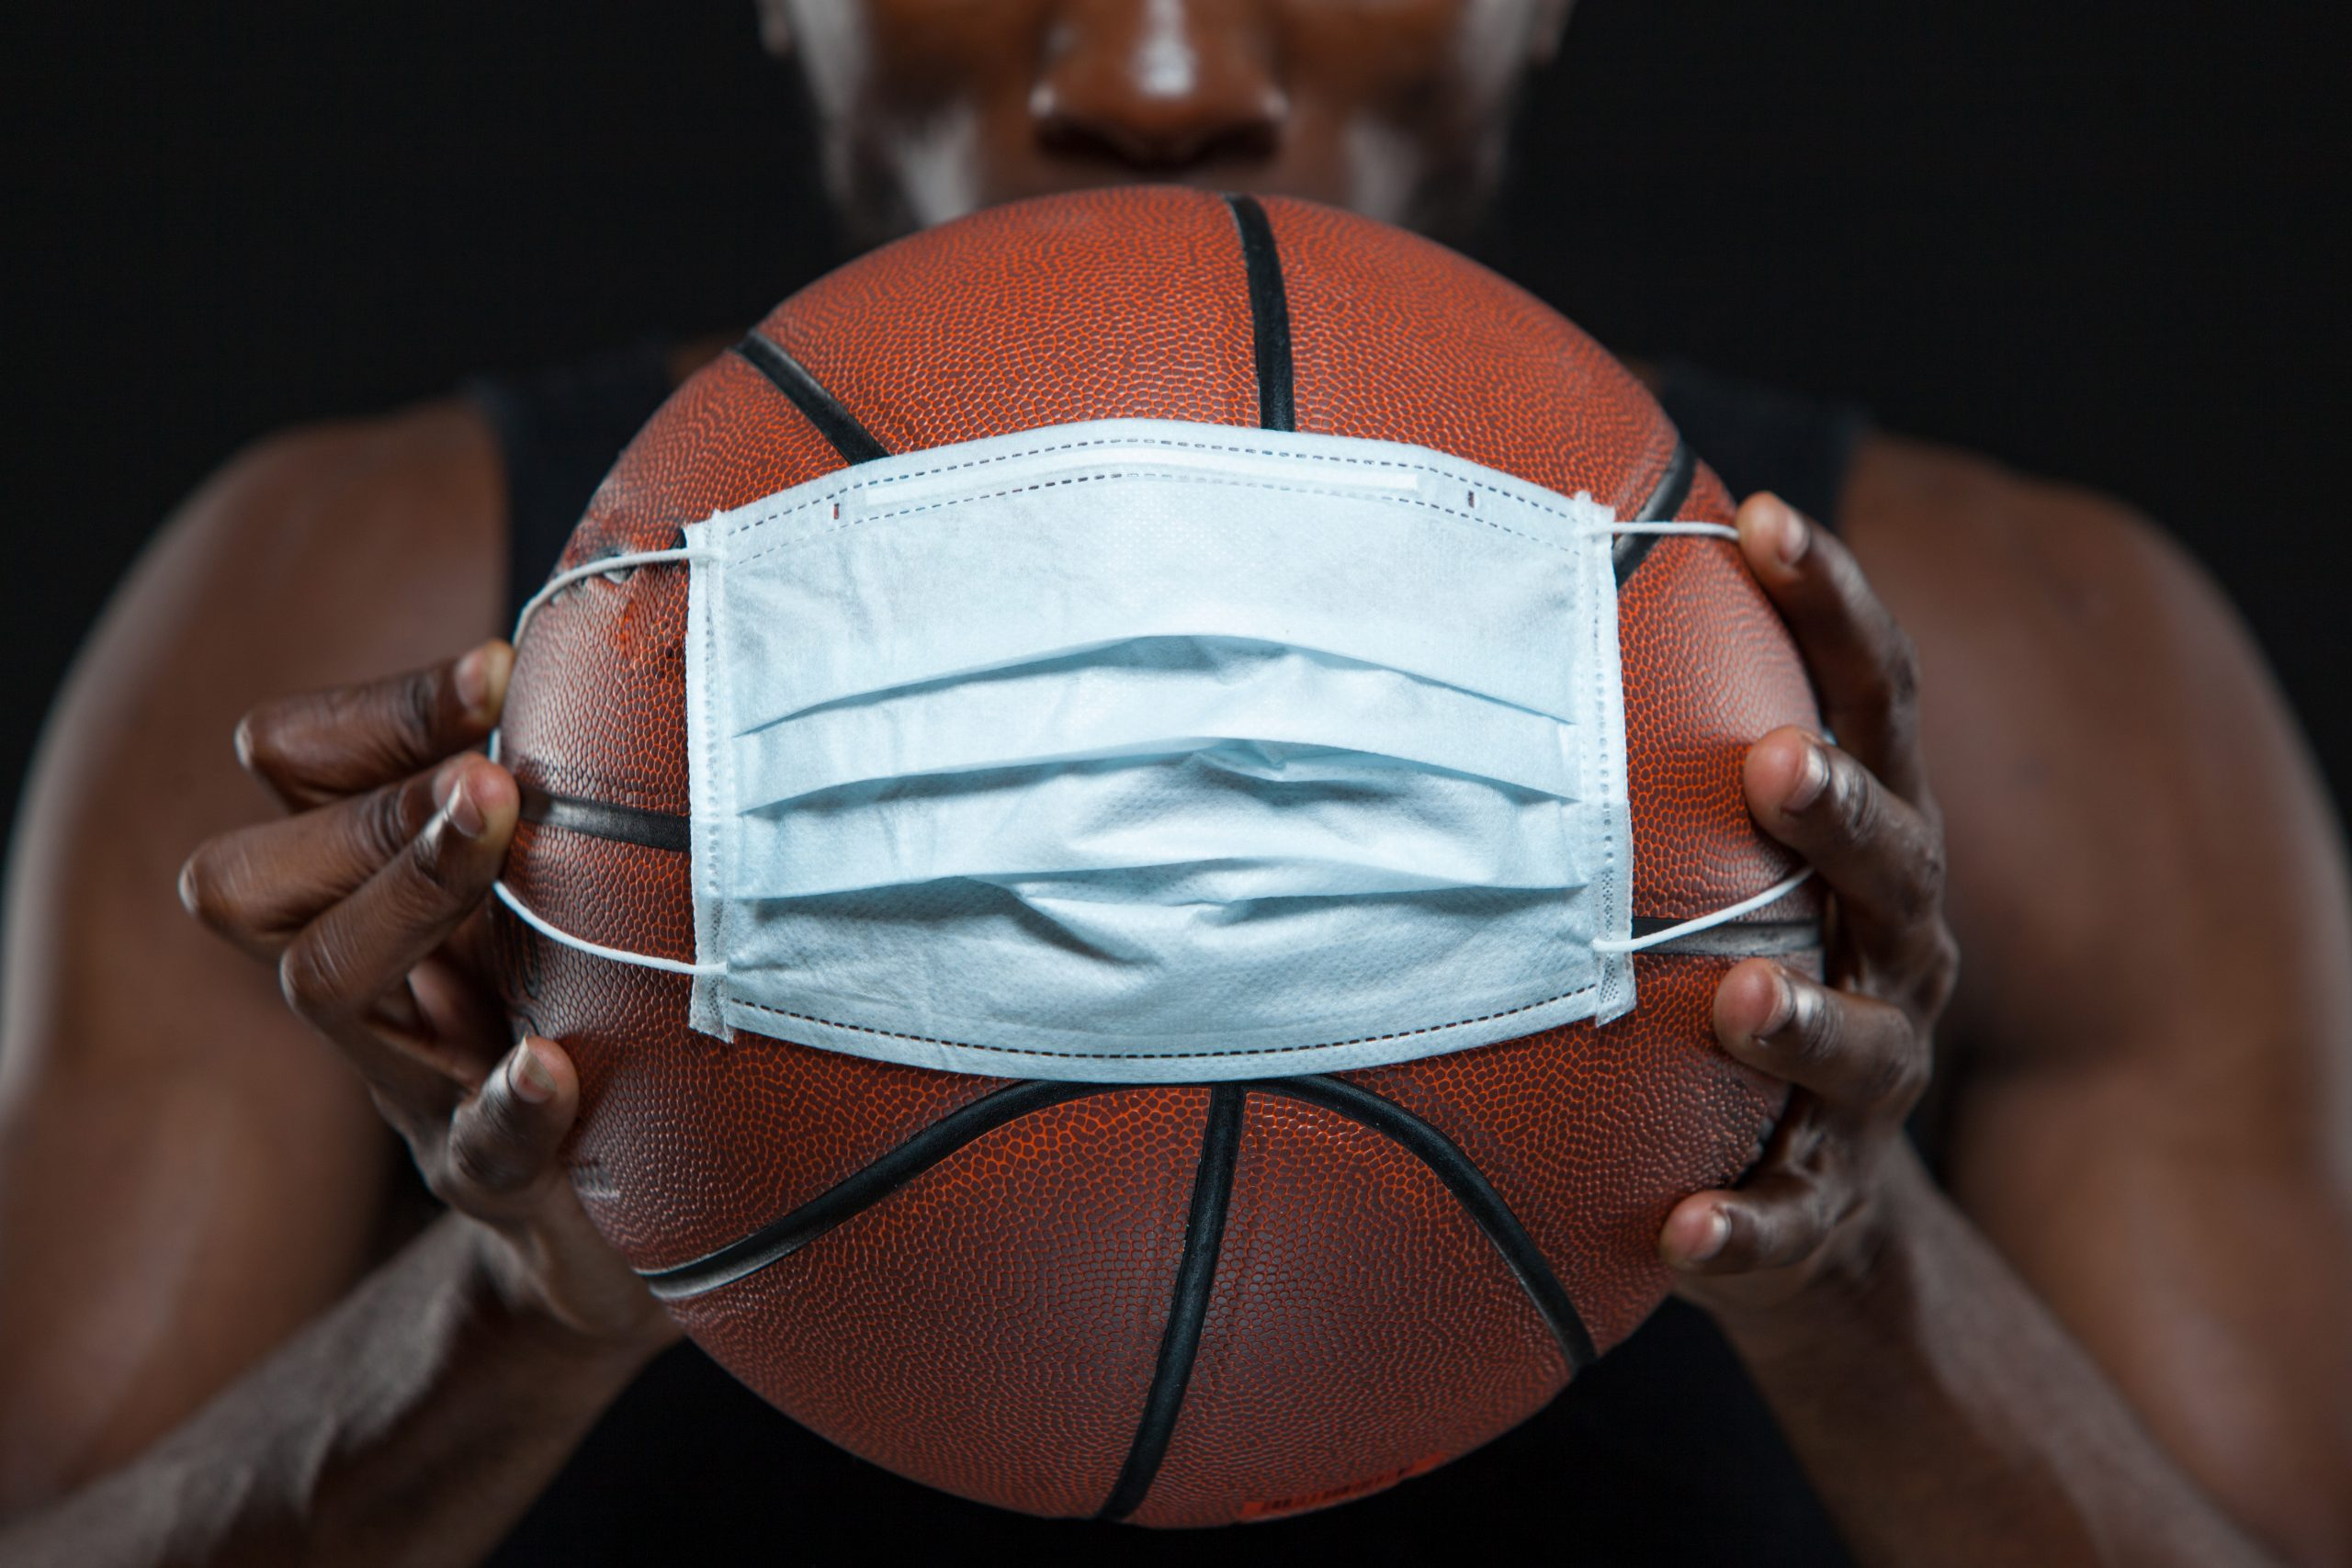 basketball with mask held by player